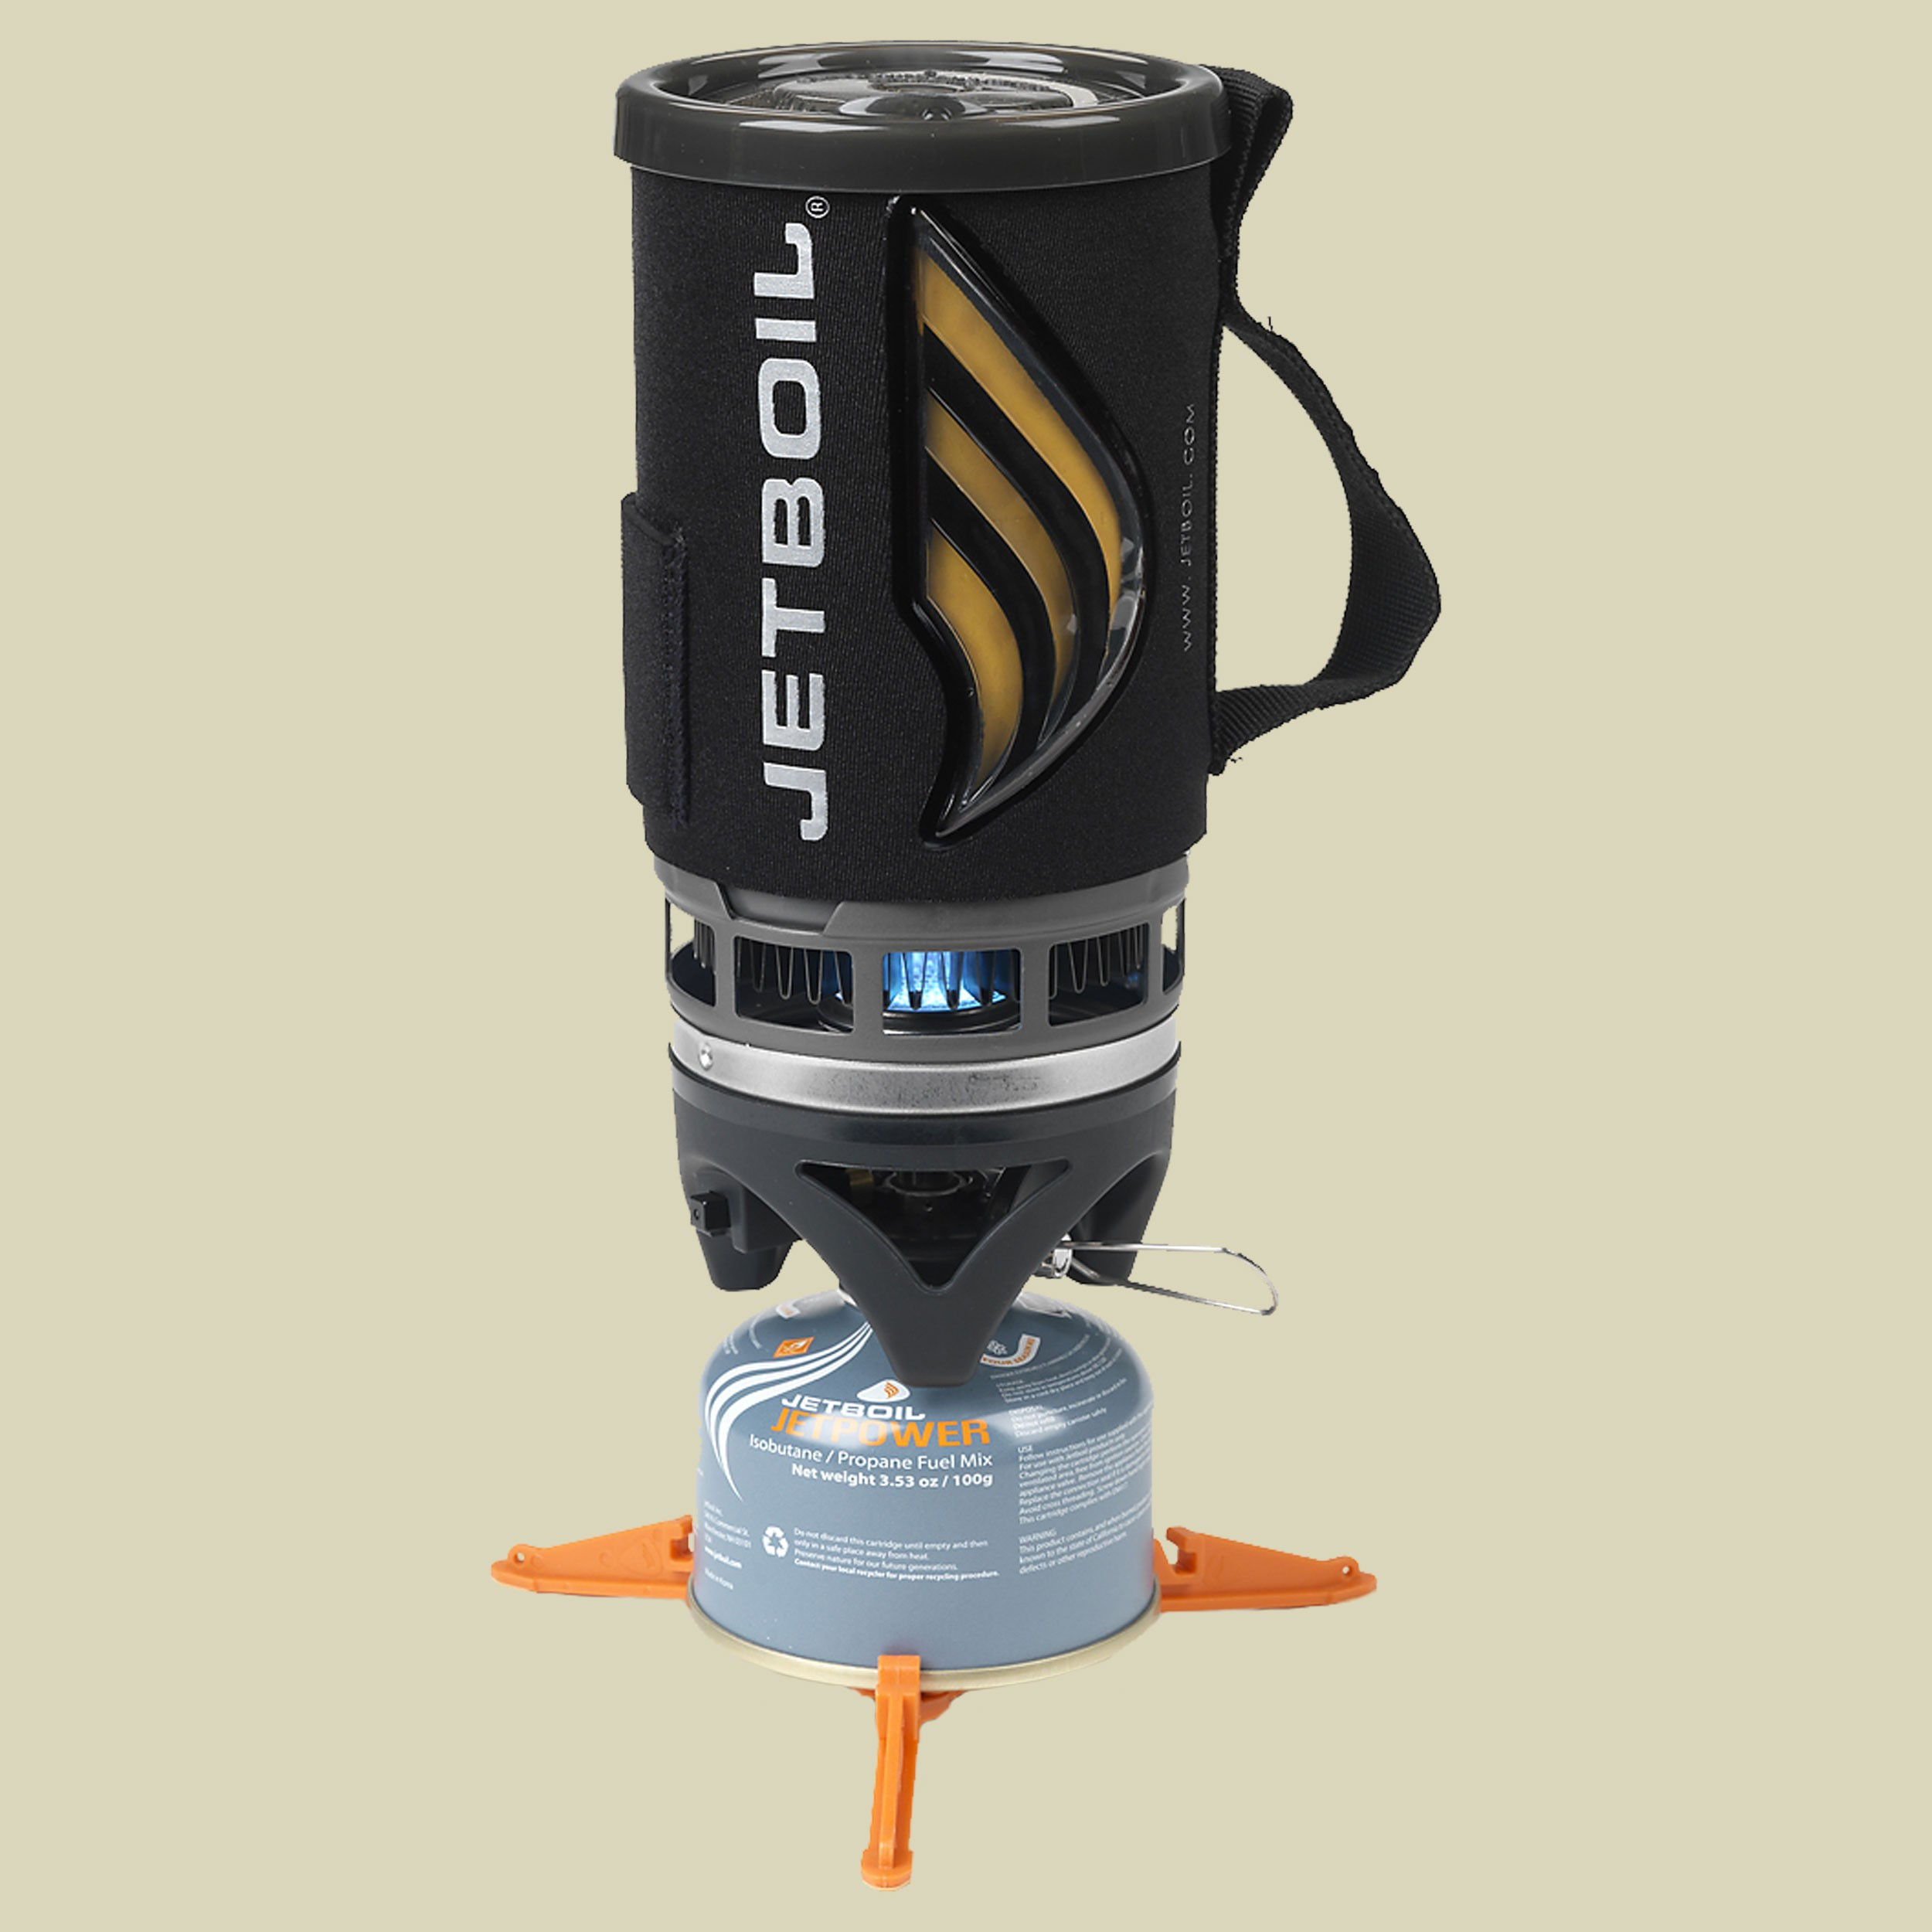 jetboil_kocher_FLASH_black_fallback.jpg